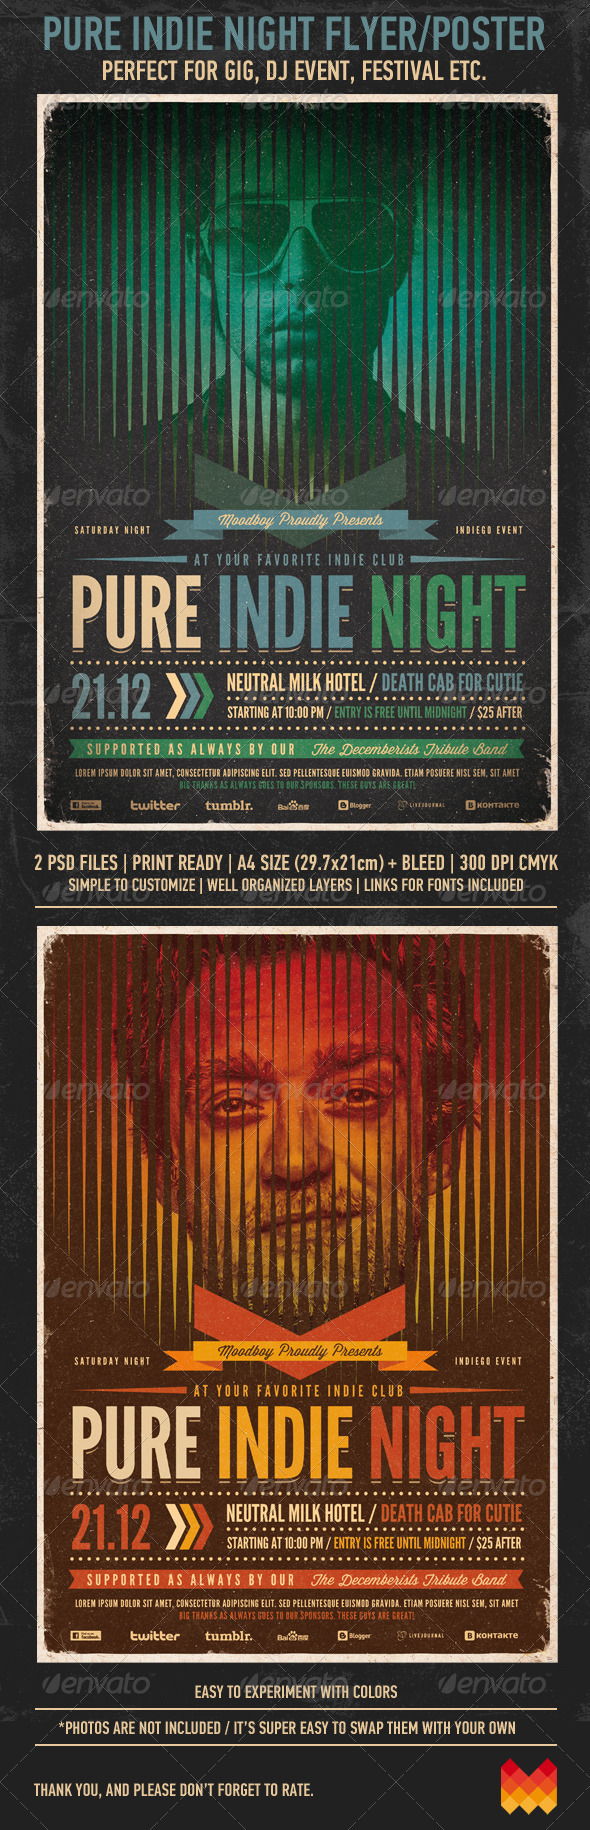 GraphicRiver Pure Indie Night Flyer Poster 3411383